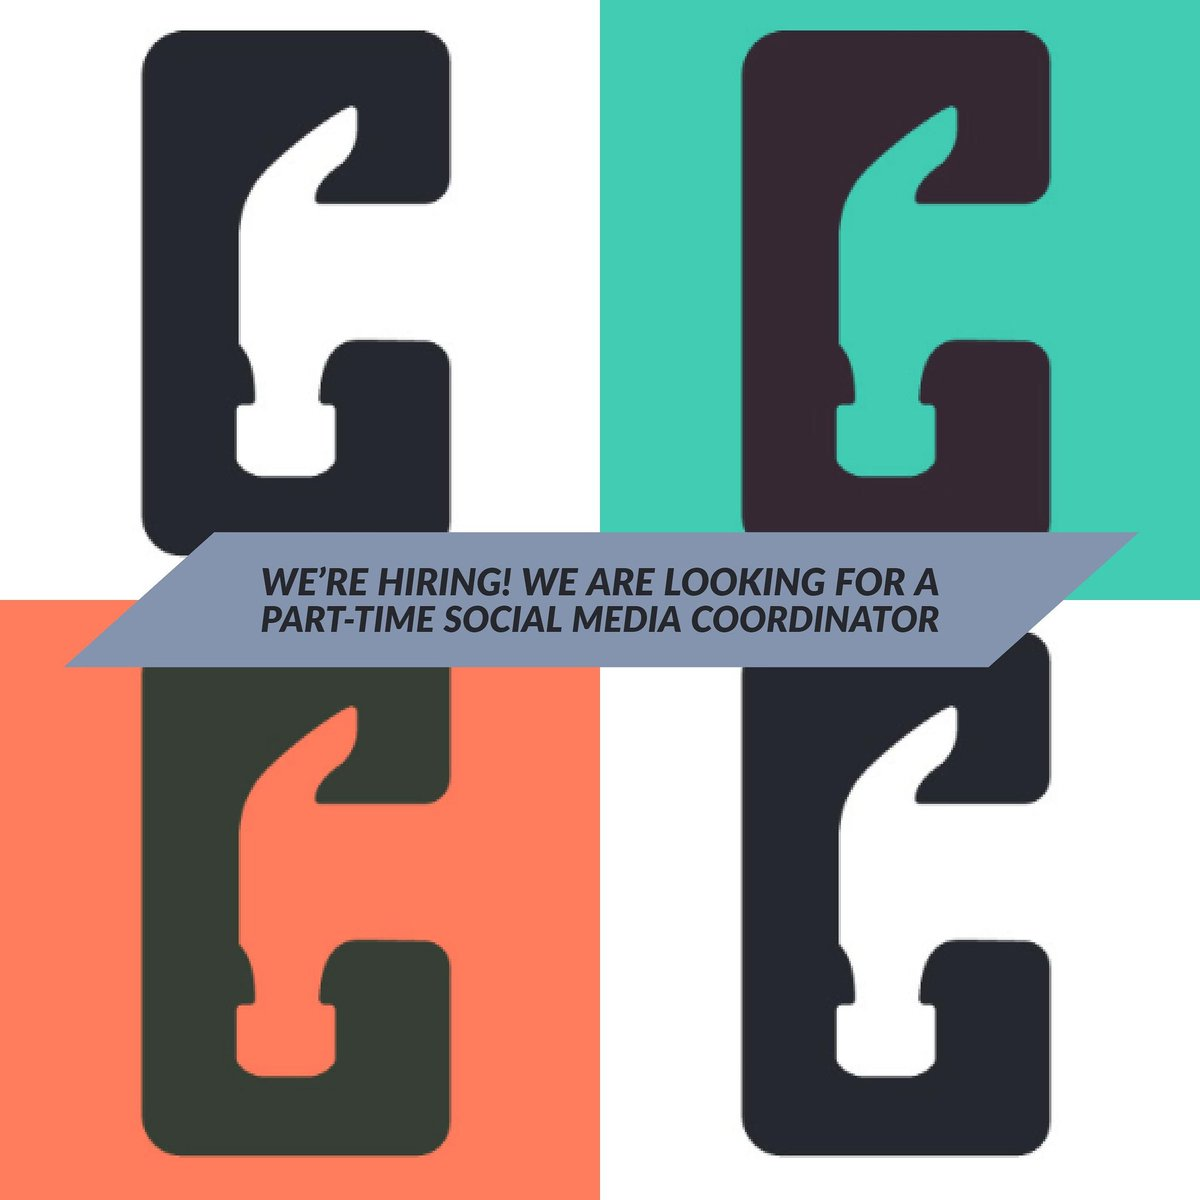 We&#39;re hiring in #yeg! We are looking for a part-time Social Media Coordinator for our #Edmonton office. PM for details  #yeggers #seo #smo <br>http://pic.twitter.com/twJagTwP9q